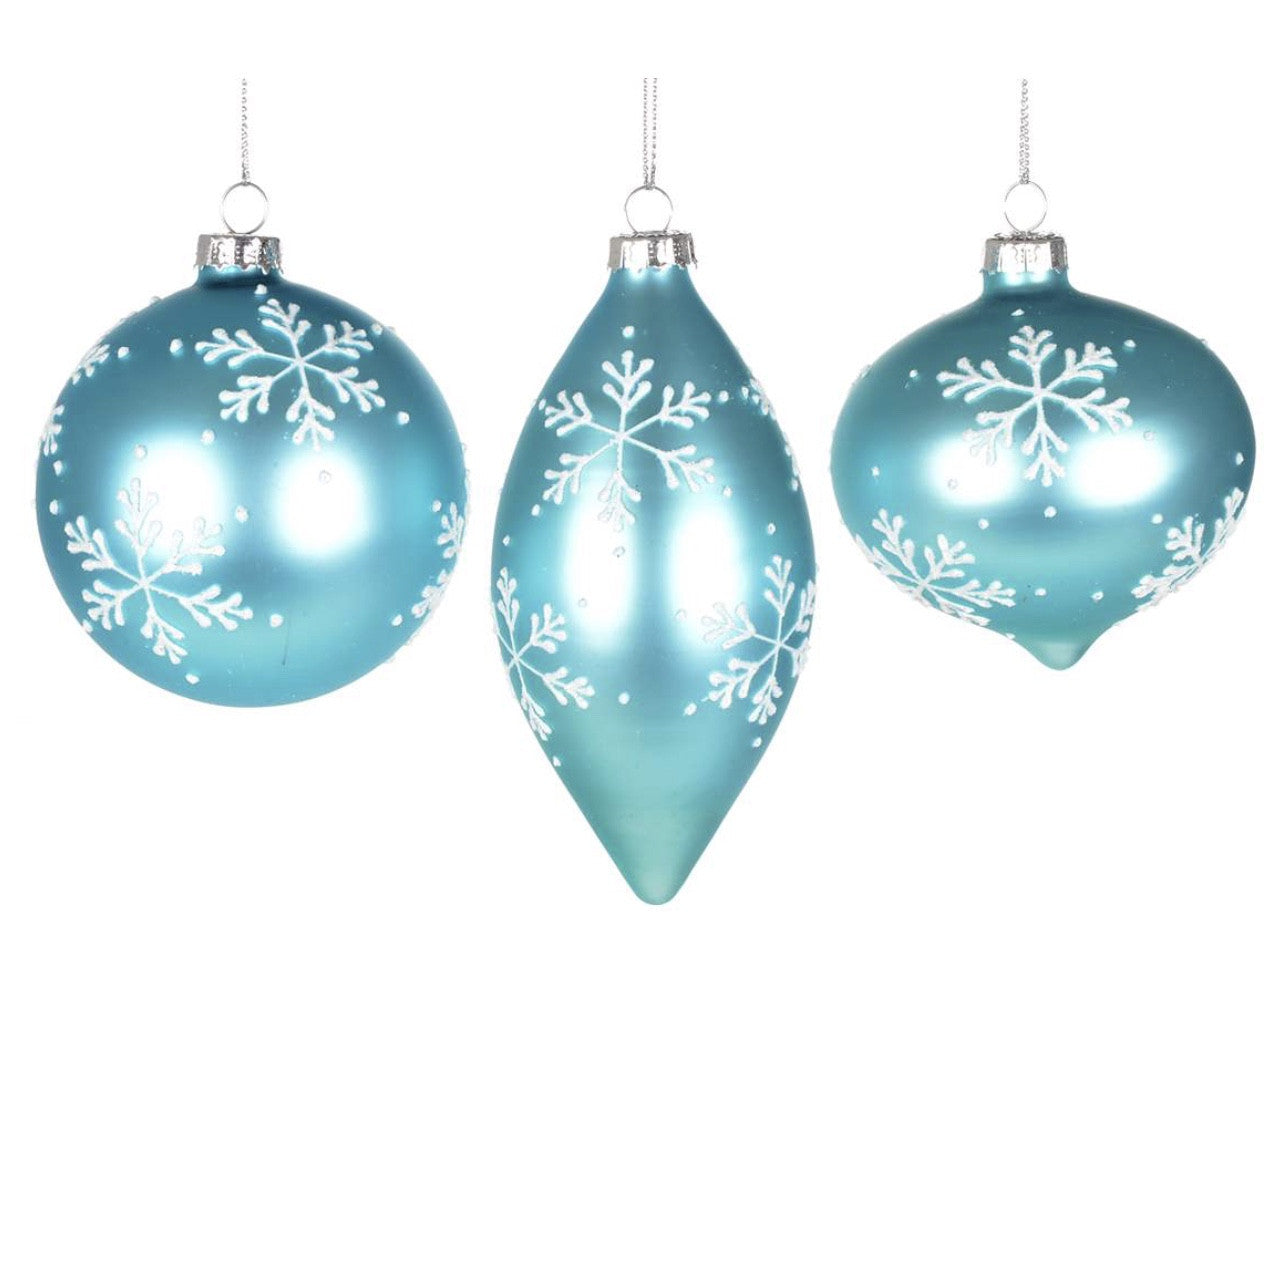 Aqua Ornament with Snowflakes-Christmas-CT-Christmas Tradition-Ball-Putti Fine Furnishings